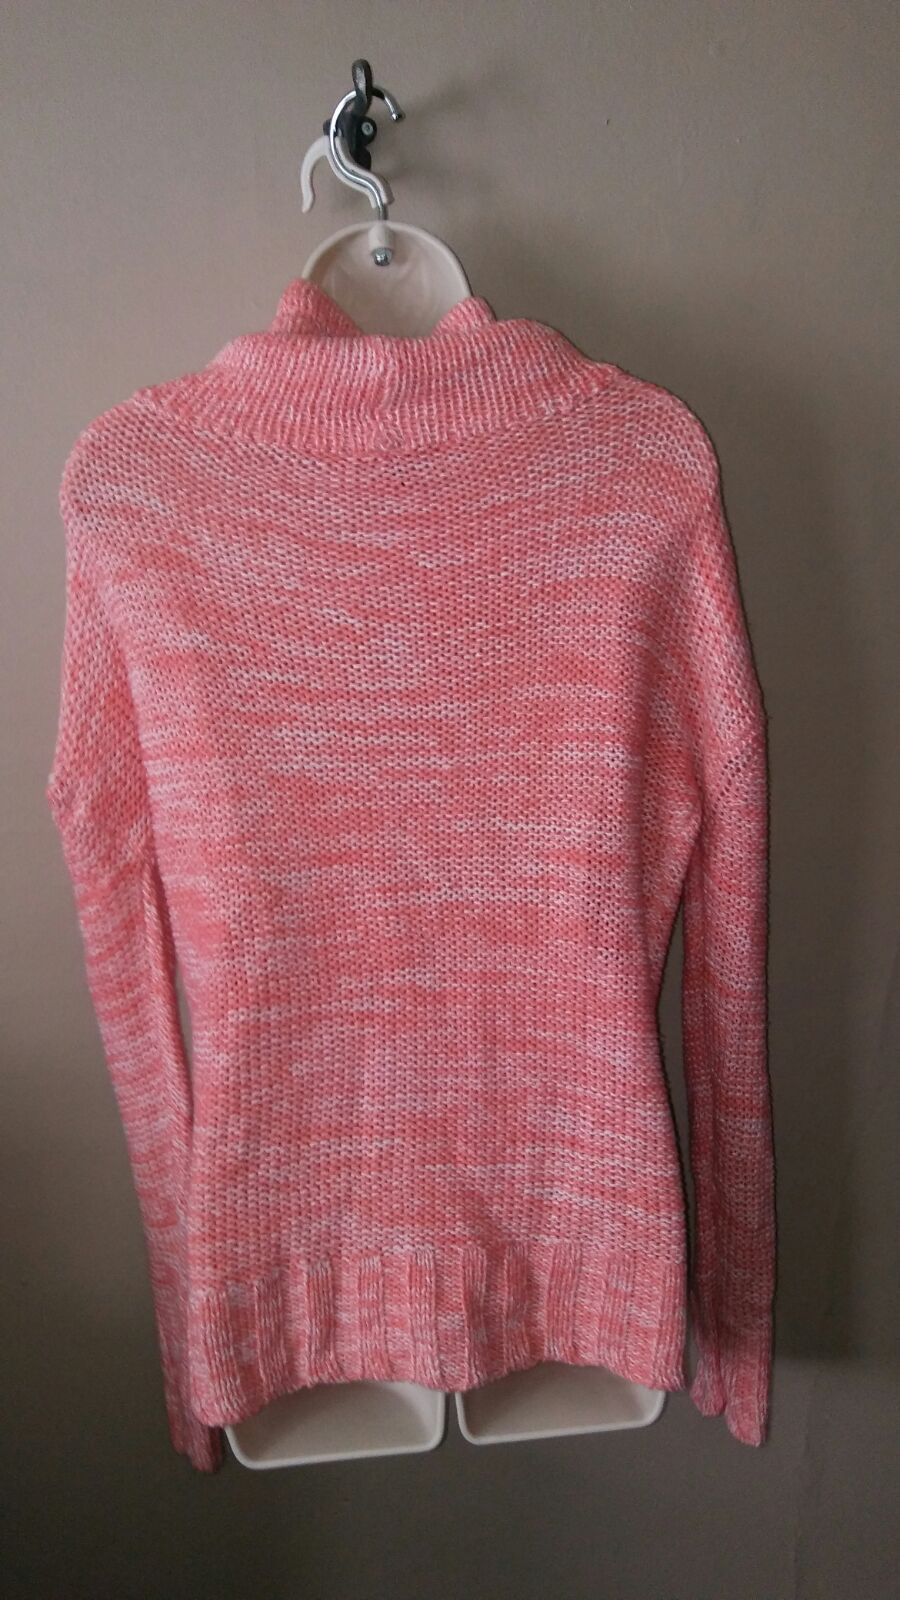 Salmon Cowl Neck Sweater with Pocket L - Mercari: BUY & SELL ...